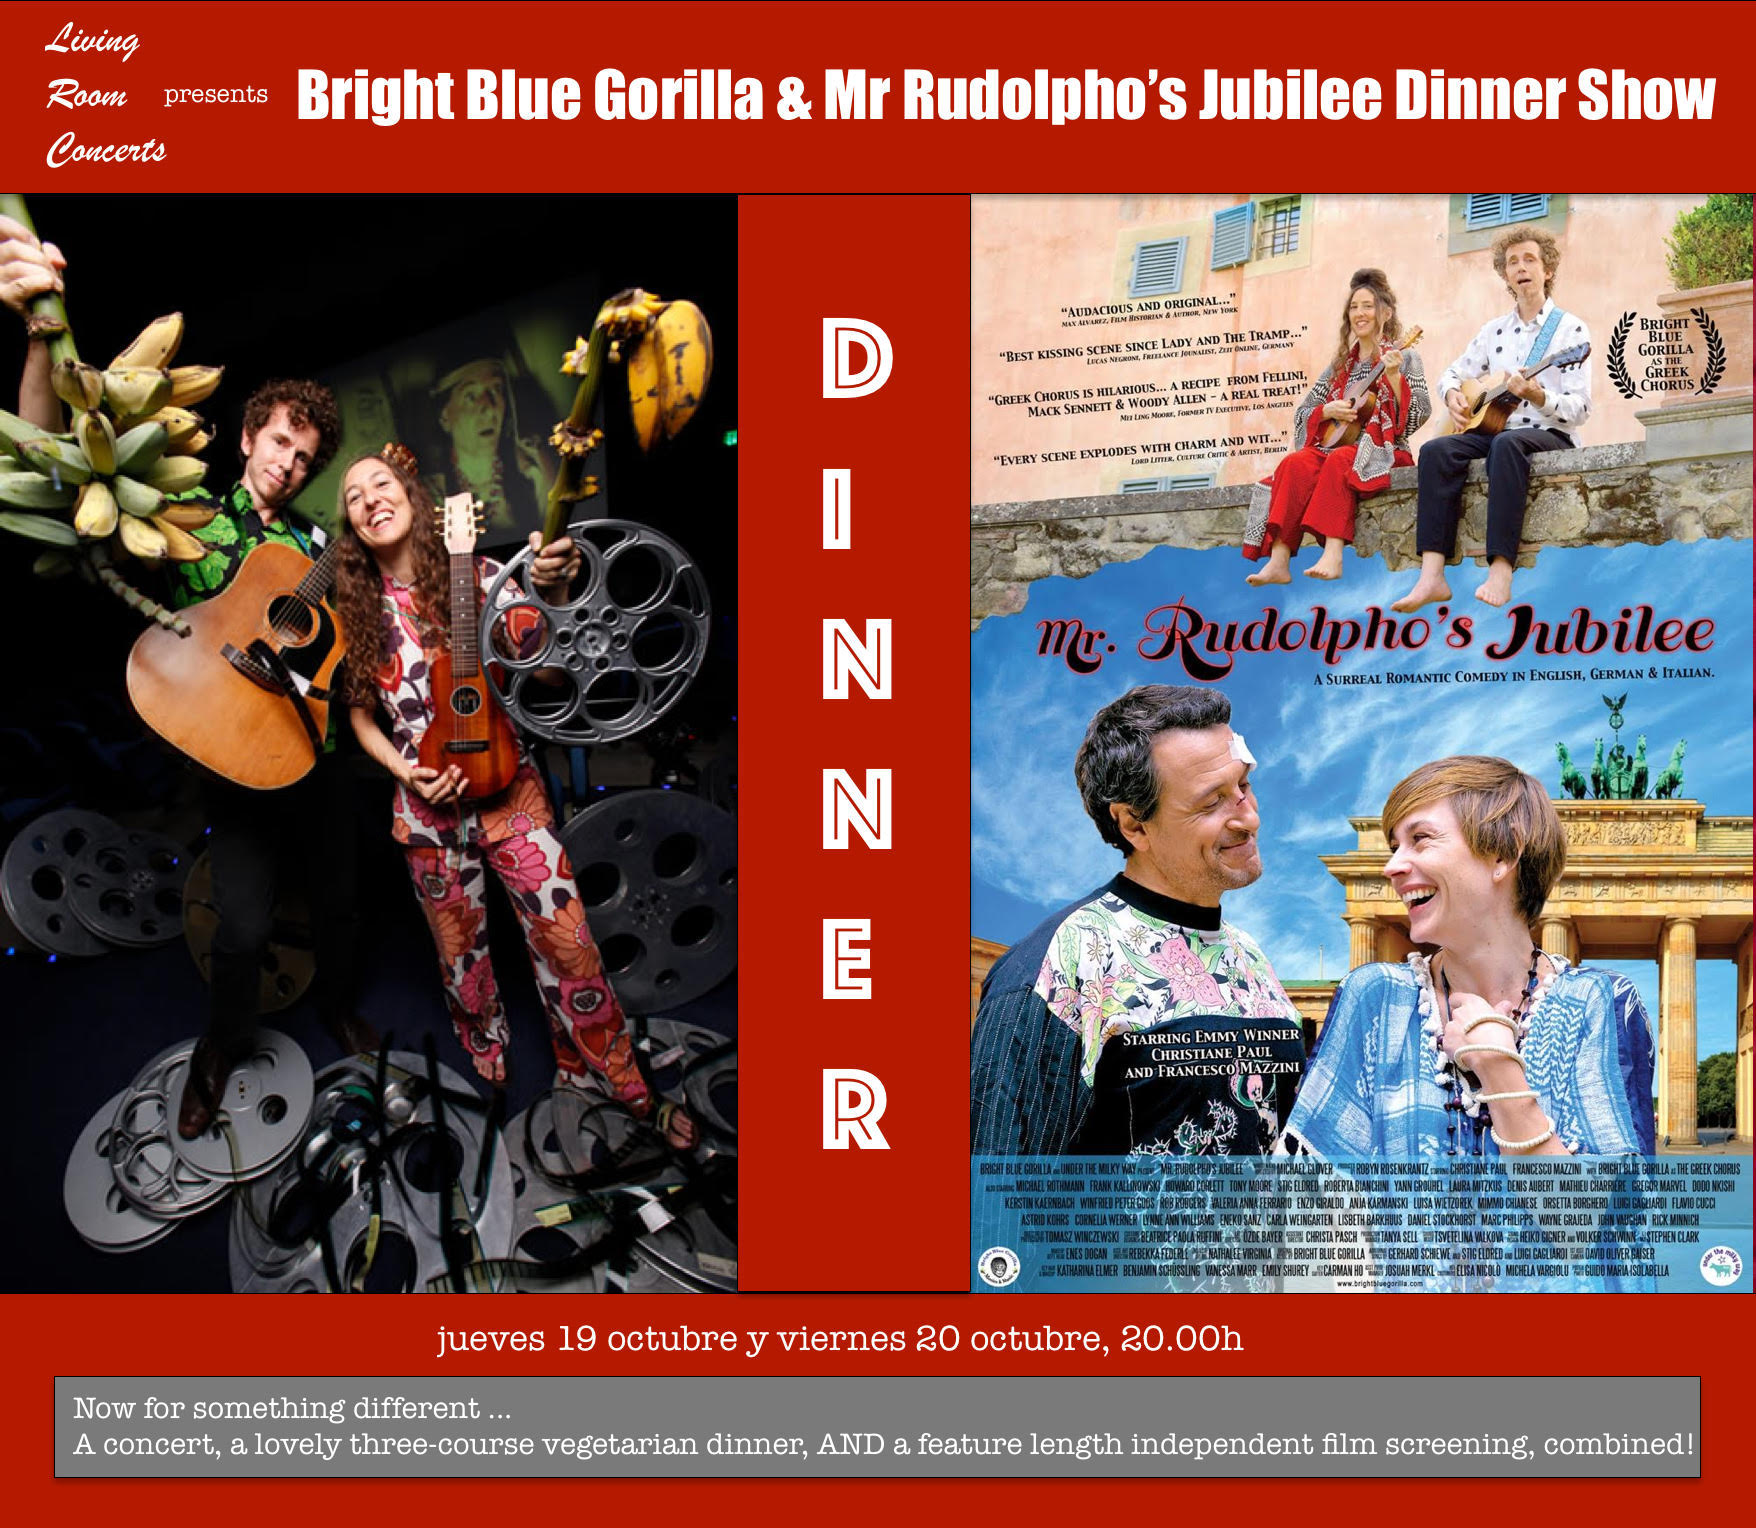 20 October - LRC presents Bright Blue Gorilla & Mr. Rudolpho's Jubilee Dinner Show